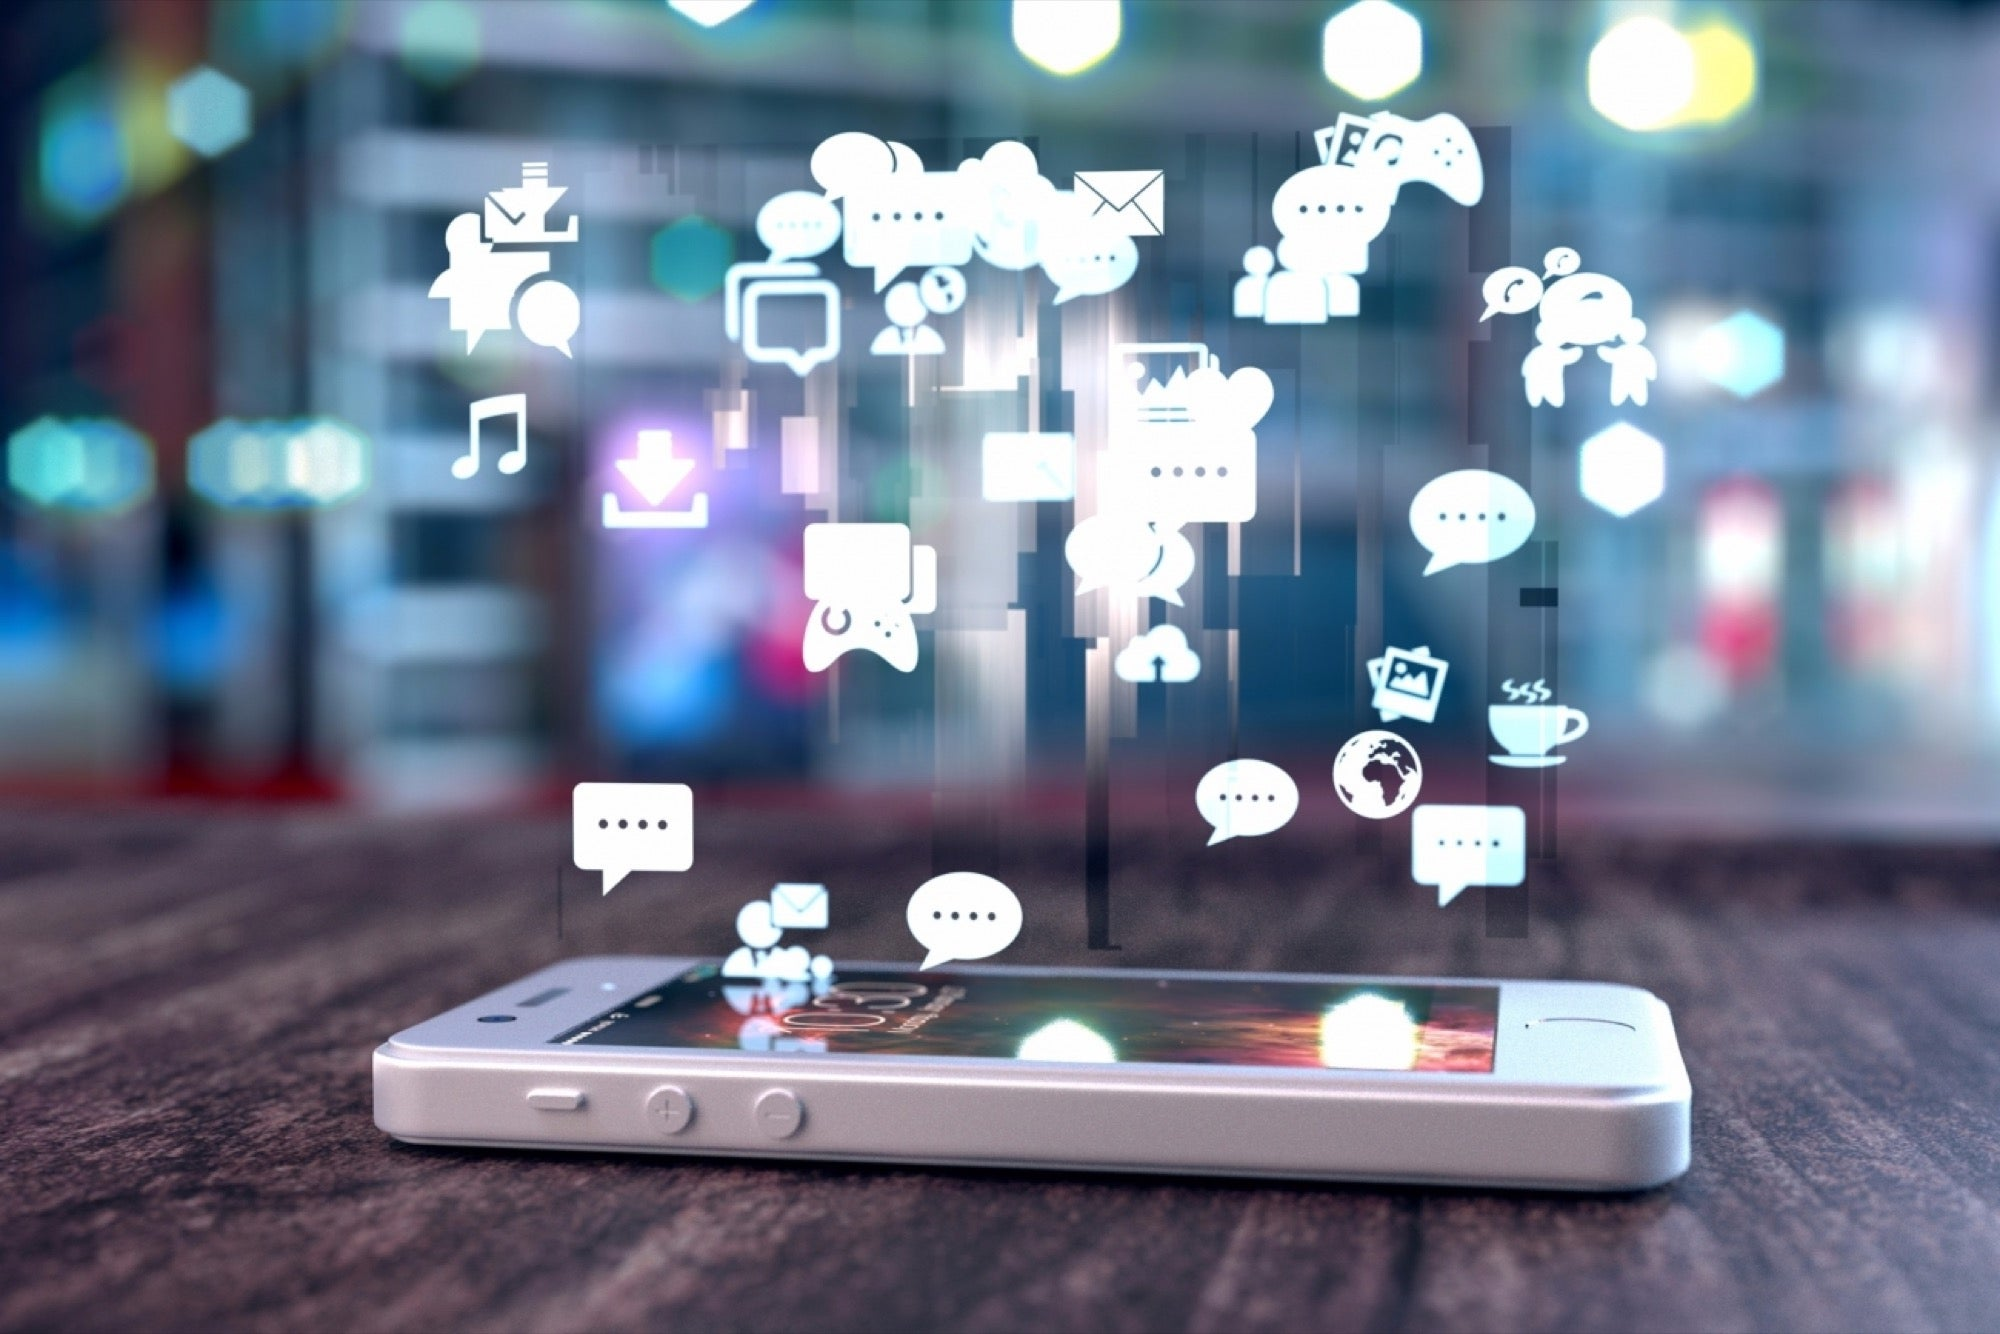 4 Ways to Use Social Media to Sell Your Products